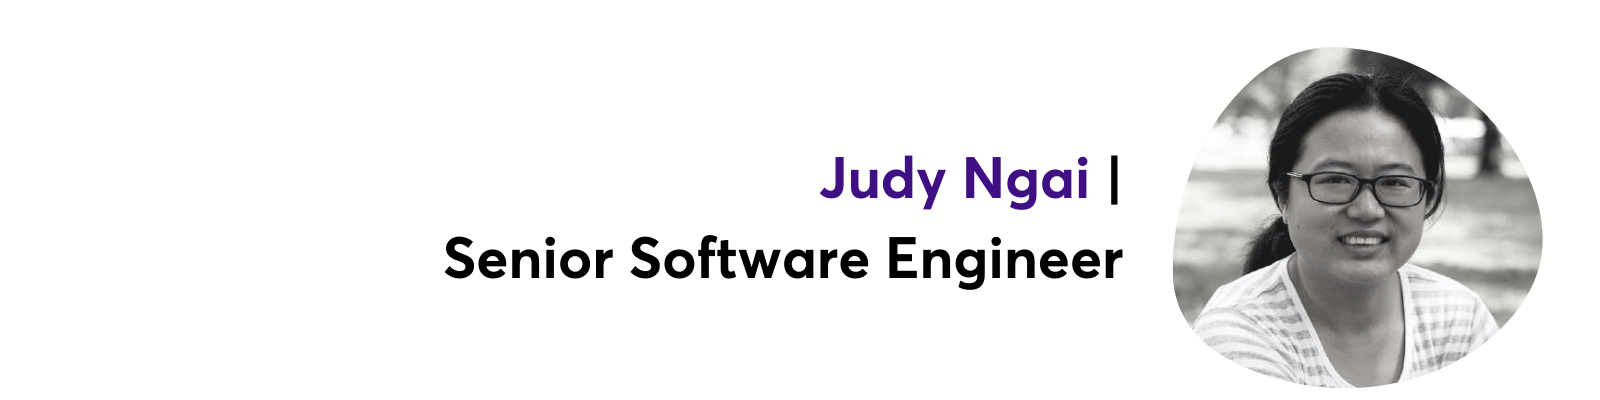 Headshot of Judy with title and name.